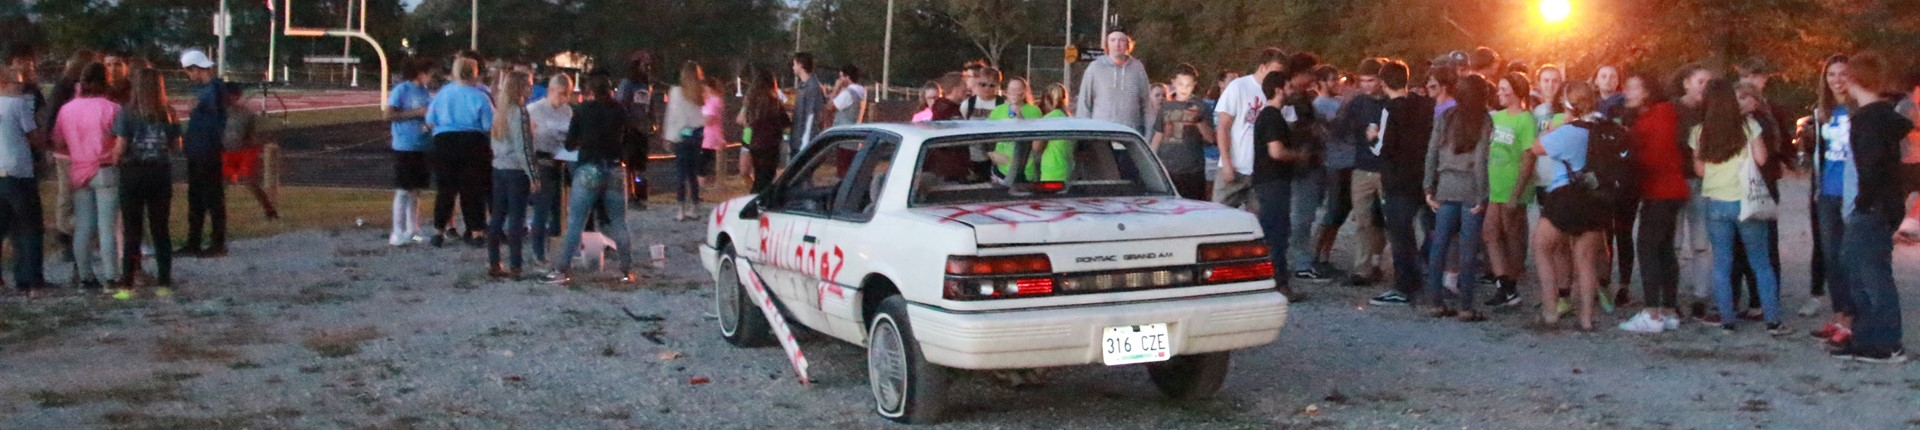 Students prepare to smash a vehicle in preparation for Homecoming.